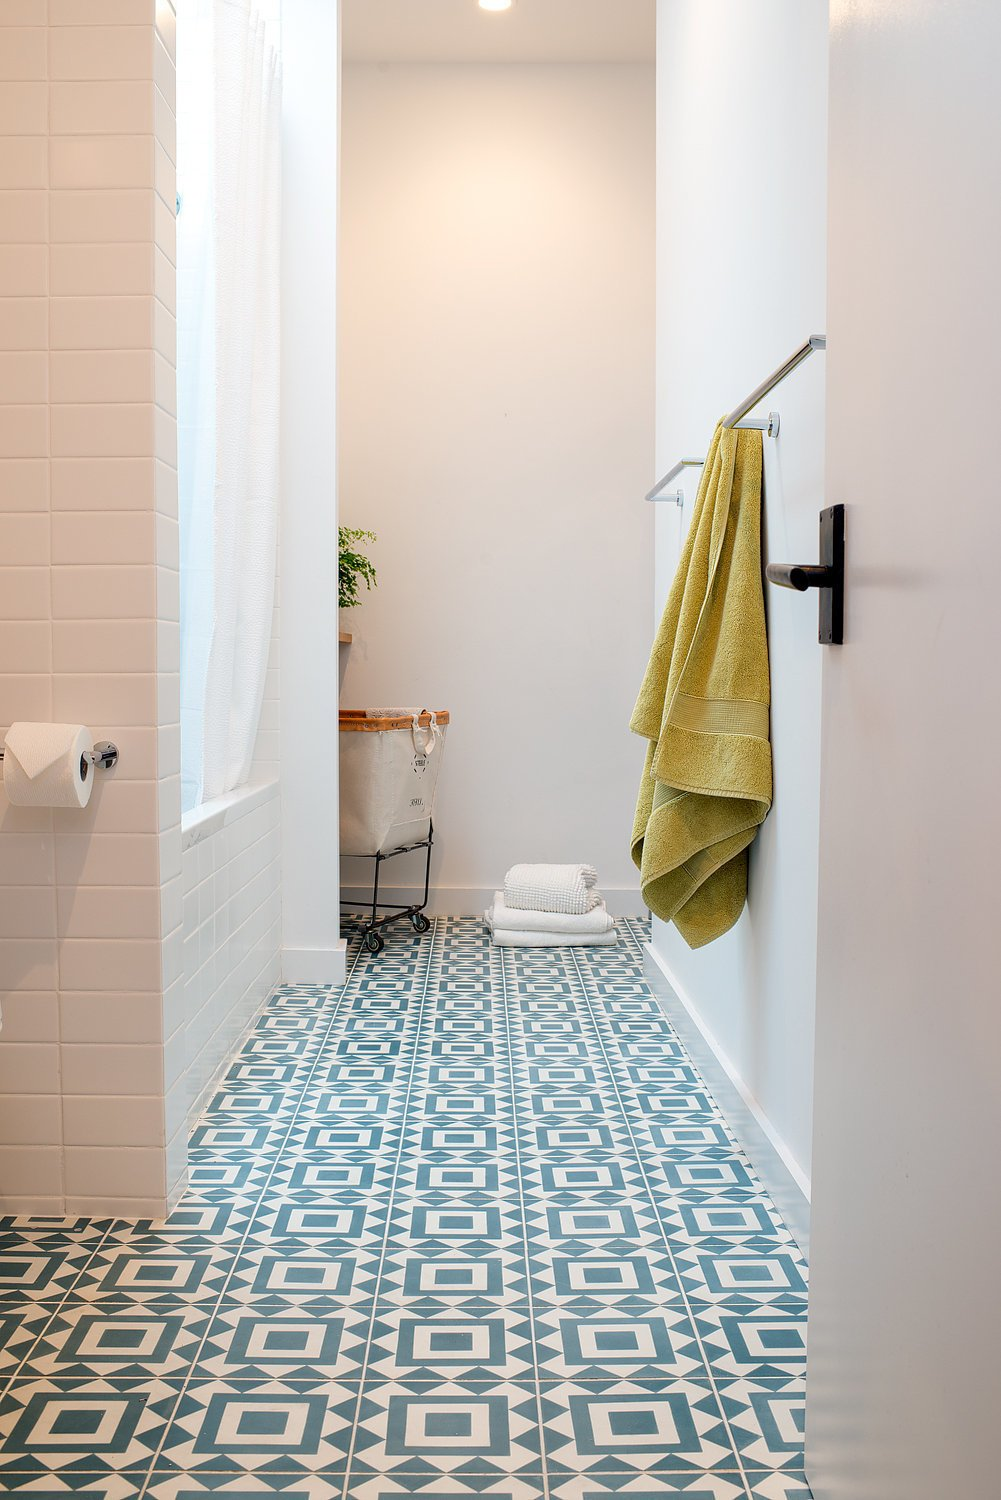 An existing lightwell was filled-in to create space for a concealed laundry area at the rear of the main bathroom. Soft natural light pours in from the skylight over the tub. Tagged: Bath Room, Ceramic Tile Floor, and Subway Tile Wall.  Chenery Street Remodel by SF Design Build